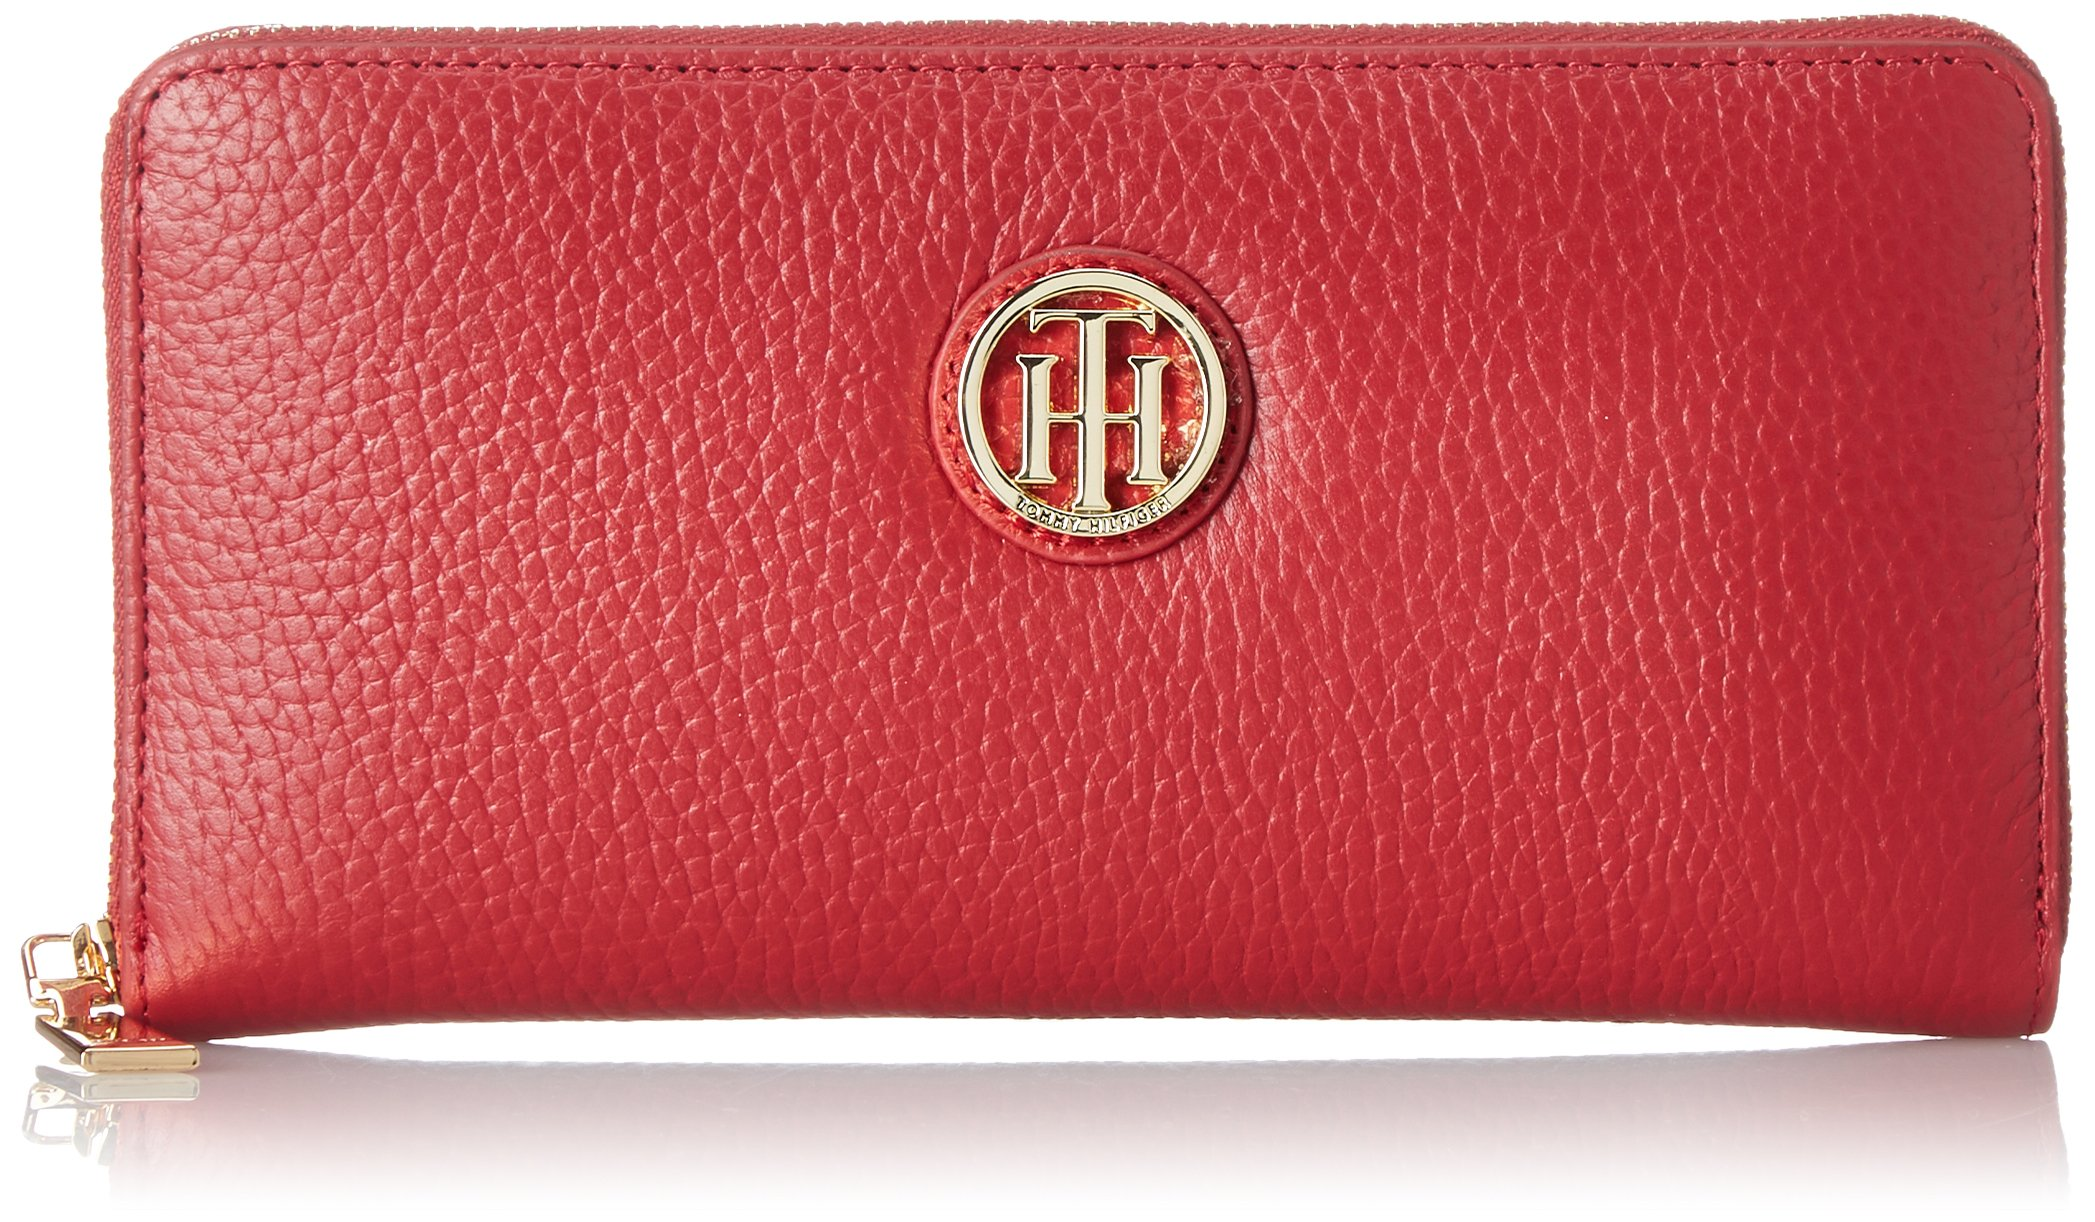 Tommy Hilfiger Lucky Charm Pebble Zip Wallet, Red, One Size